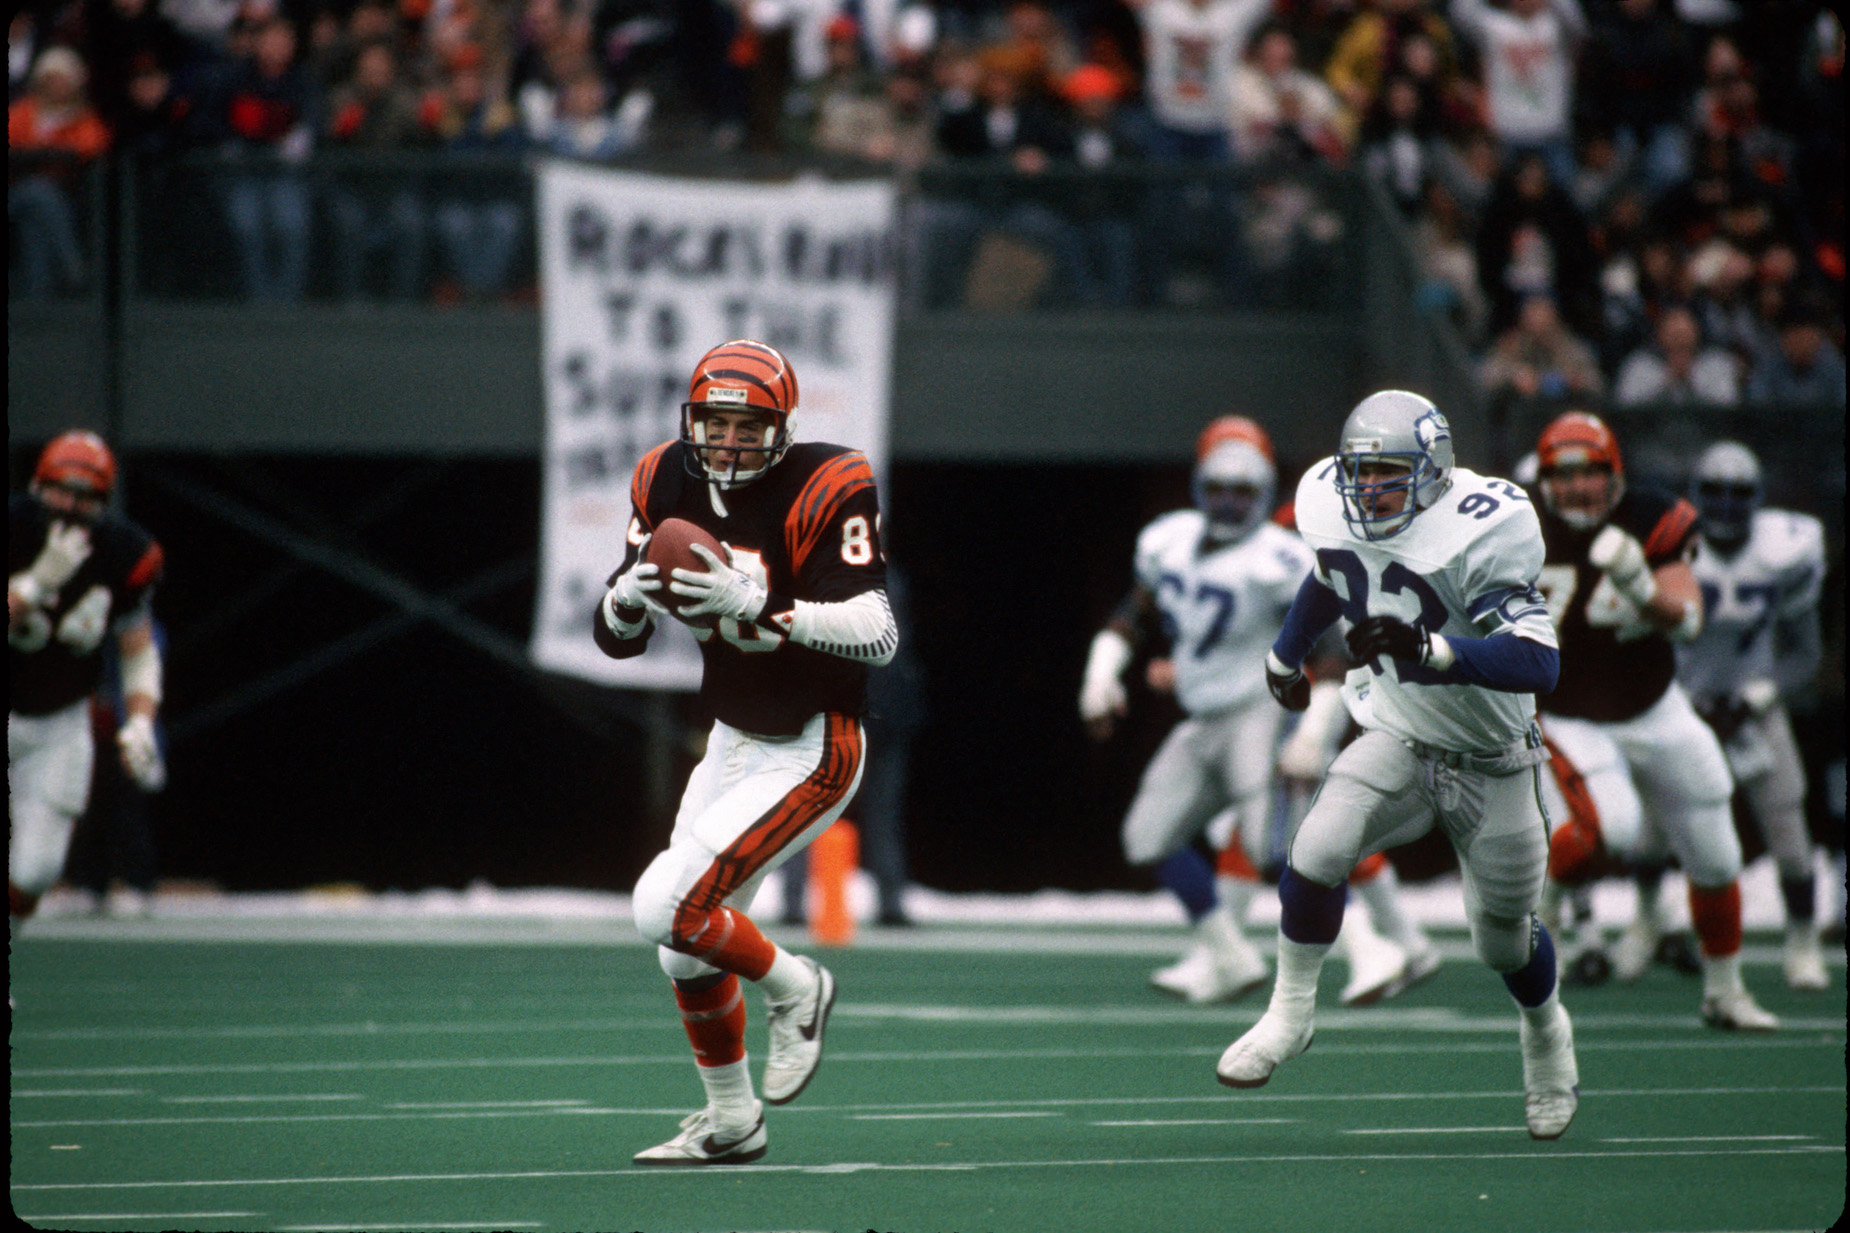 Cris Collinsworth is about to lose his place in Cincinnati Bengals history to Tee Higgins.